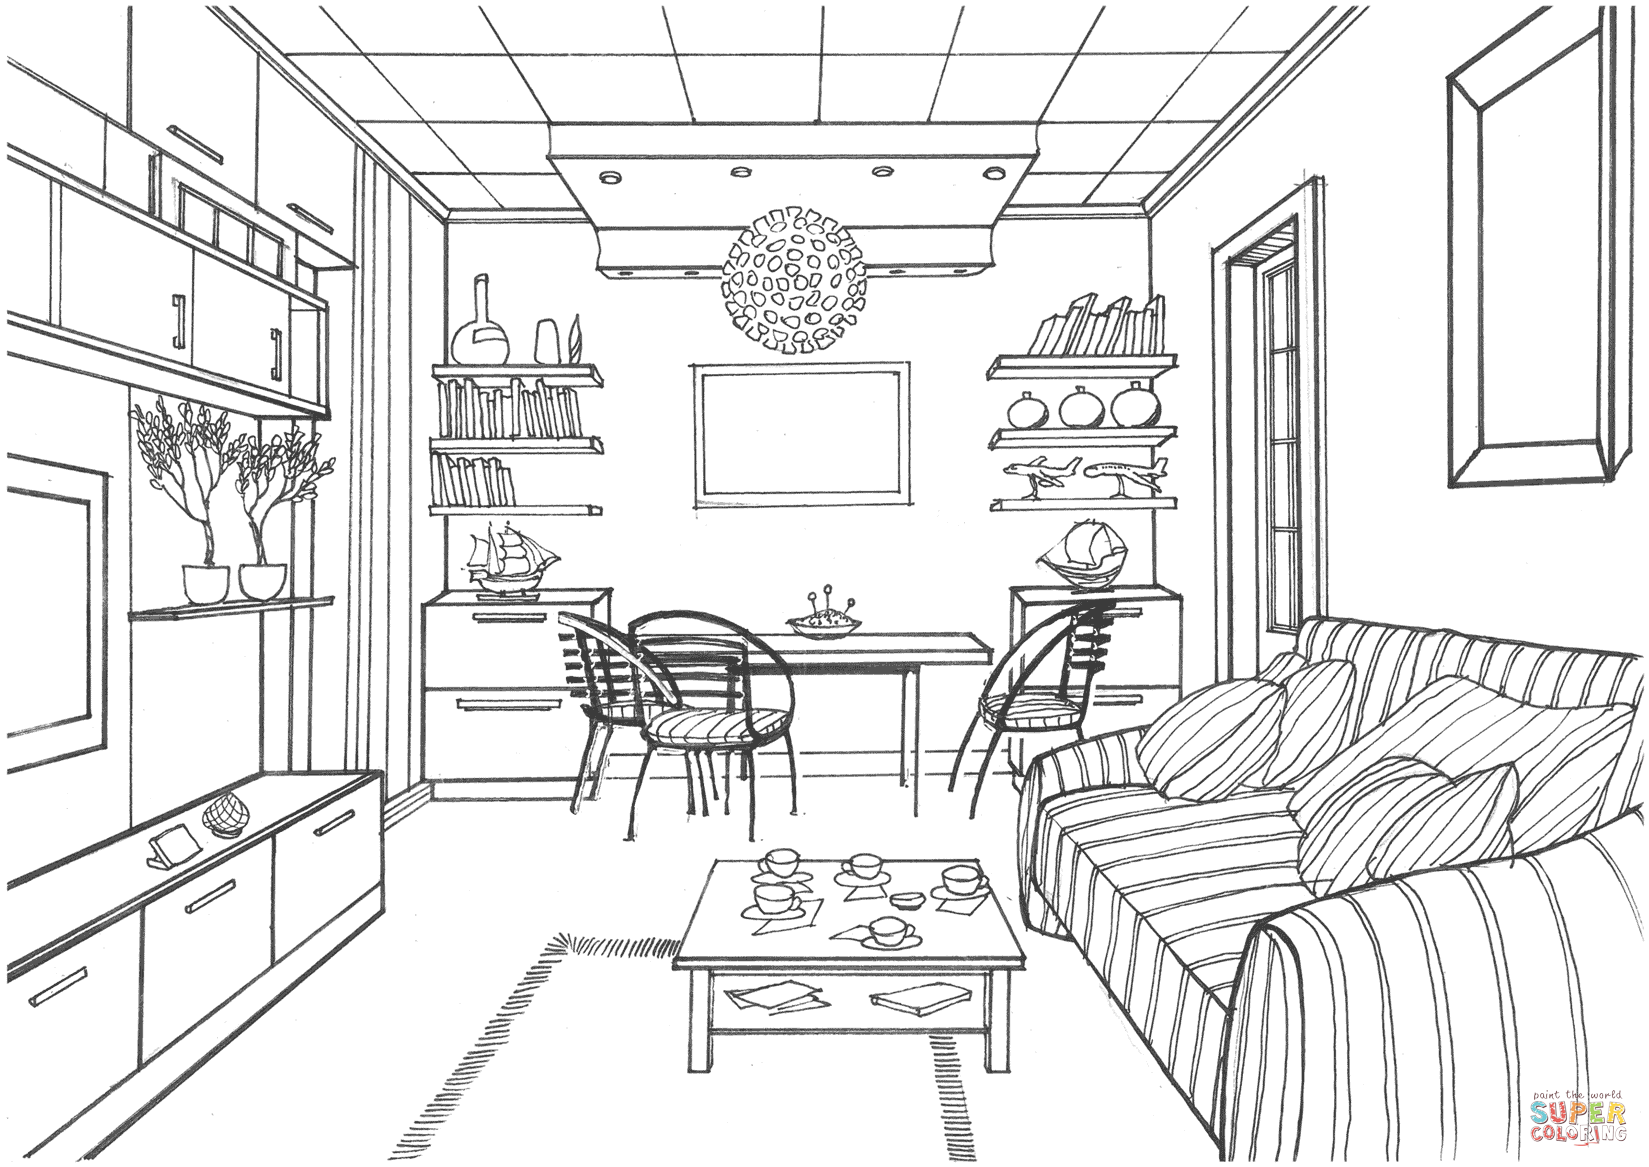 Living Room with a Luminous Ball coloring page from